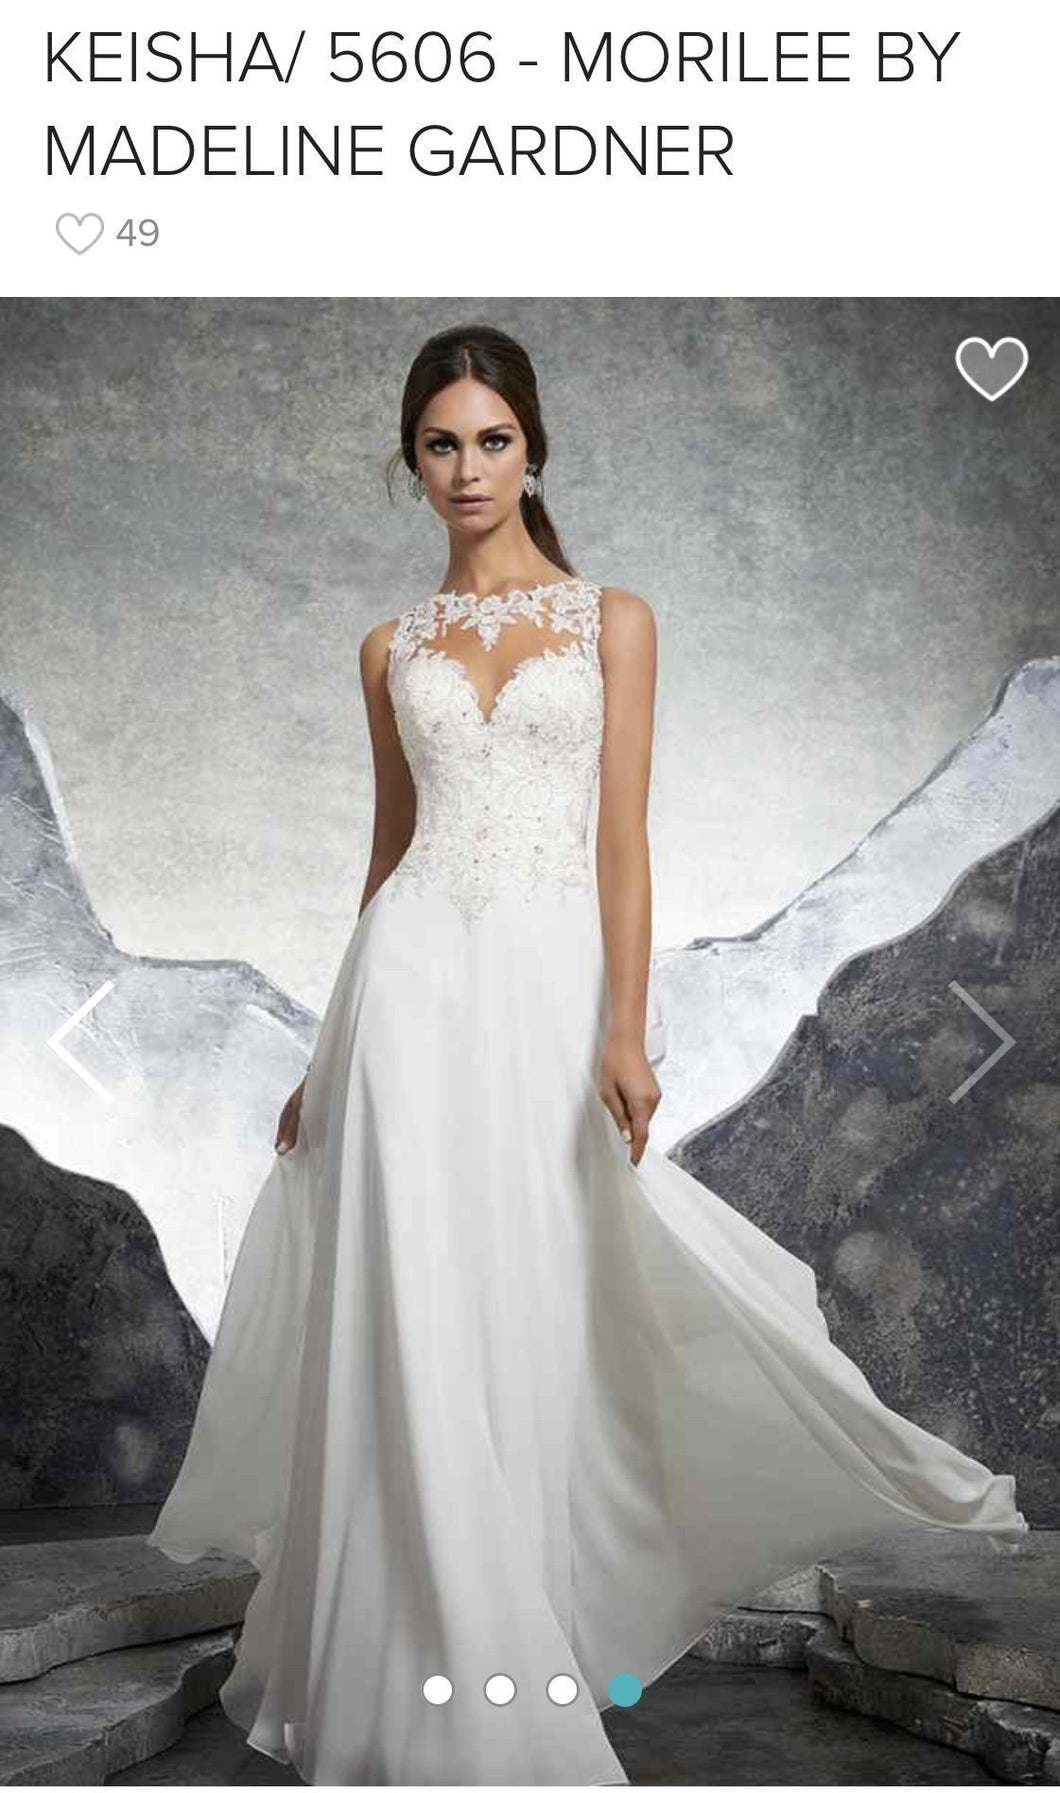 Mori Lee 'Keisha 5606'